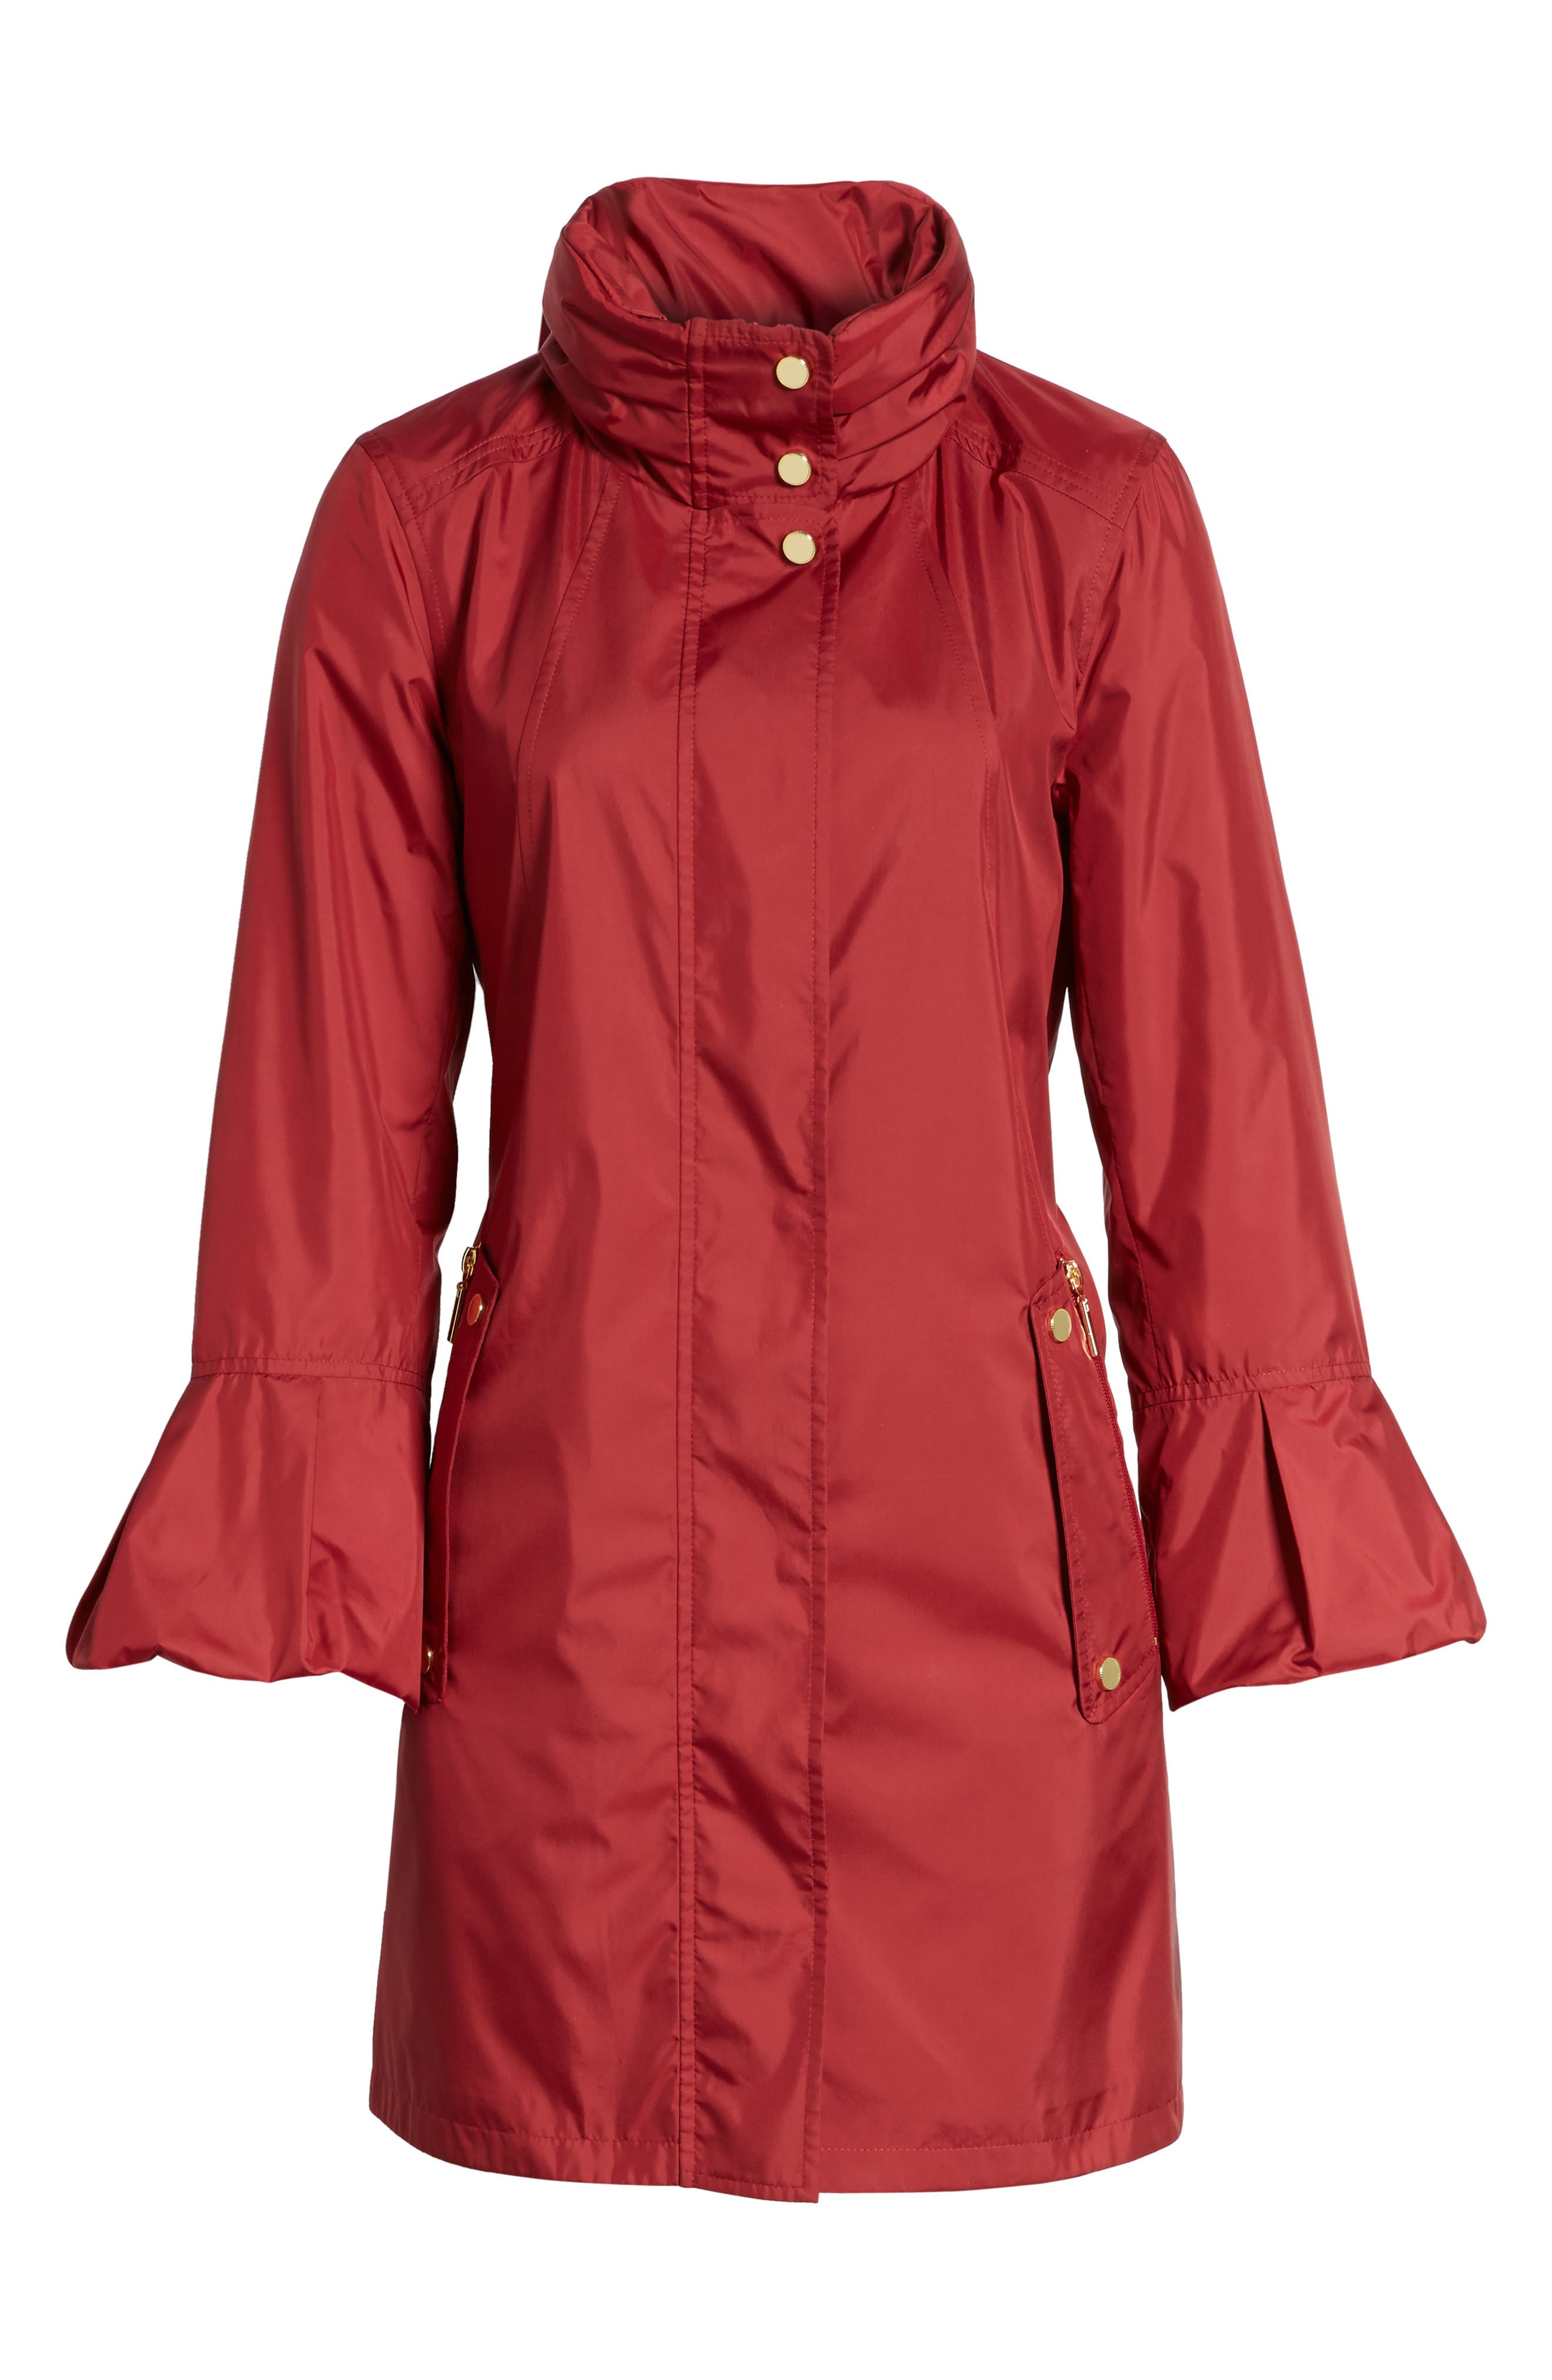 Flare Sleeve Packable Swing Jacket,                             Alternate thumbnail 10, color,